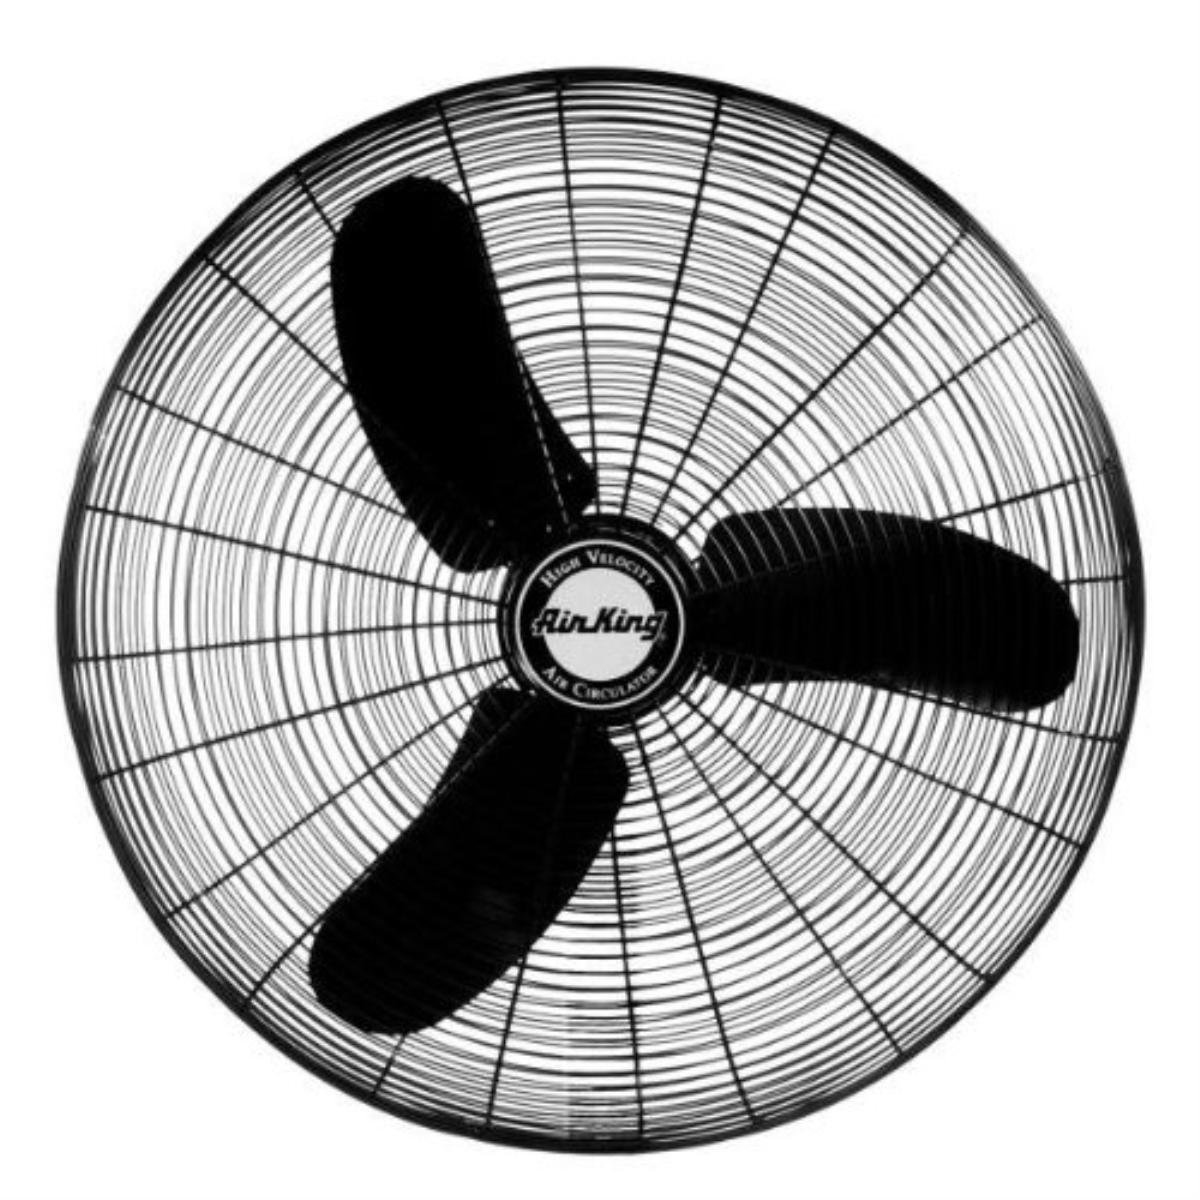 "Air King 9174H 24"" 1/3 HP Oscillating Industrial Grade High Velocity Fan Head"